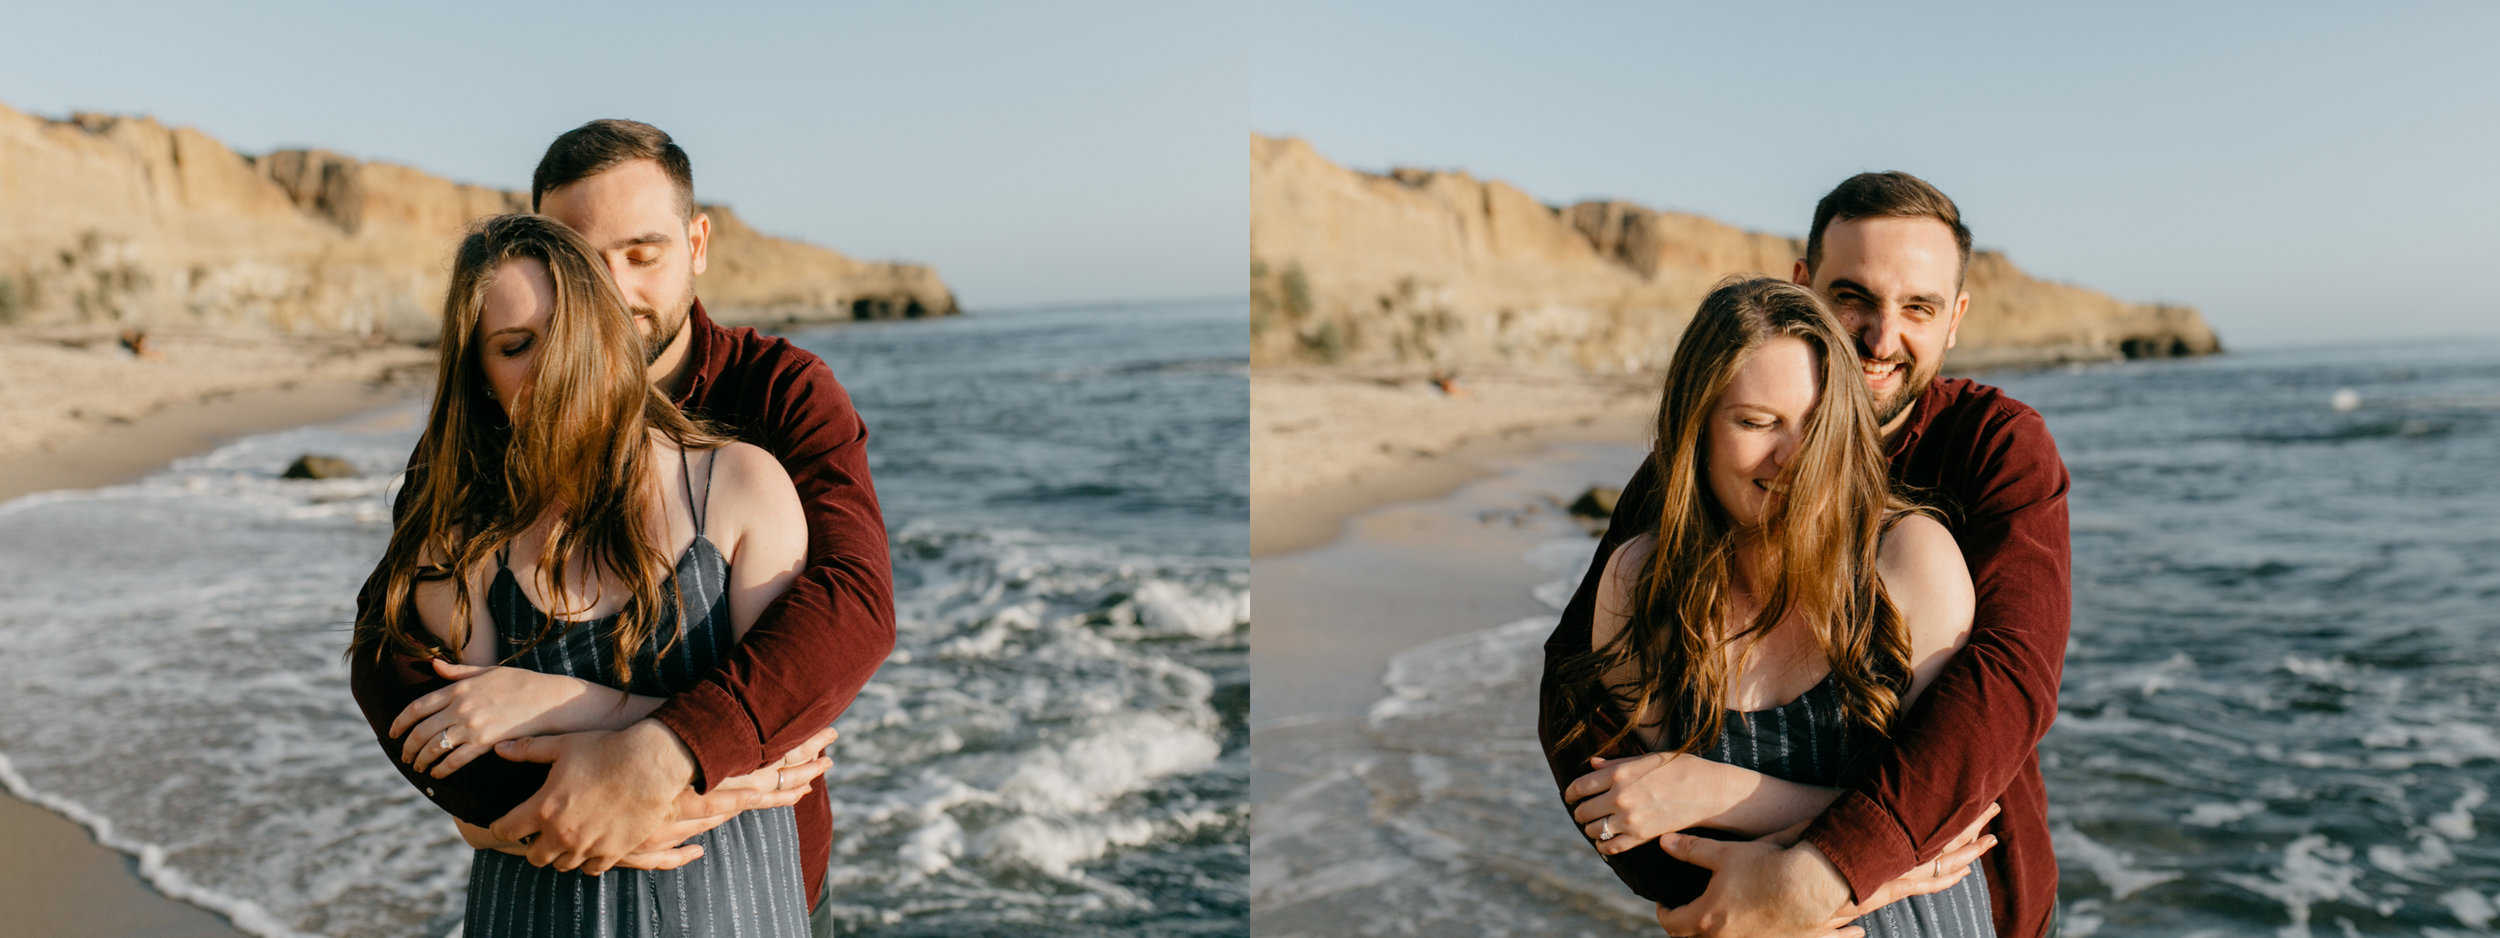 SamErica Studios Sunset Cliffs San Diego Engagement.jpg